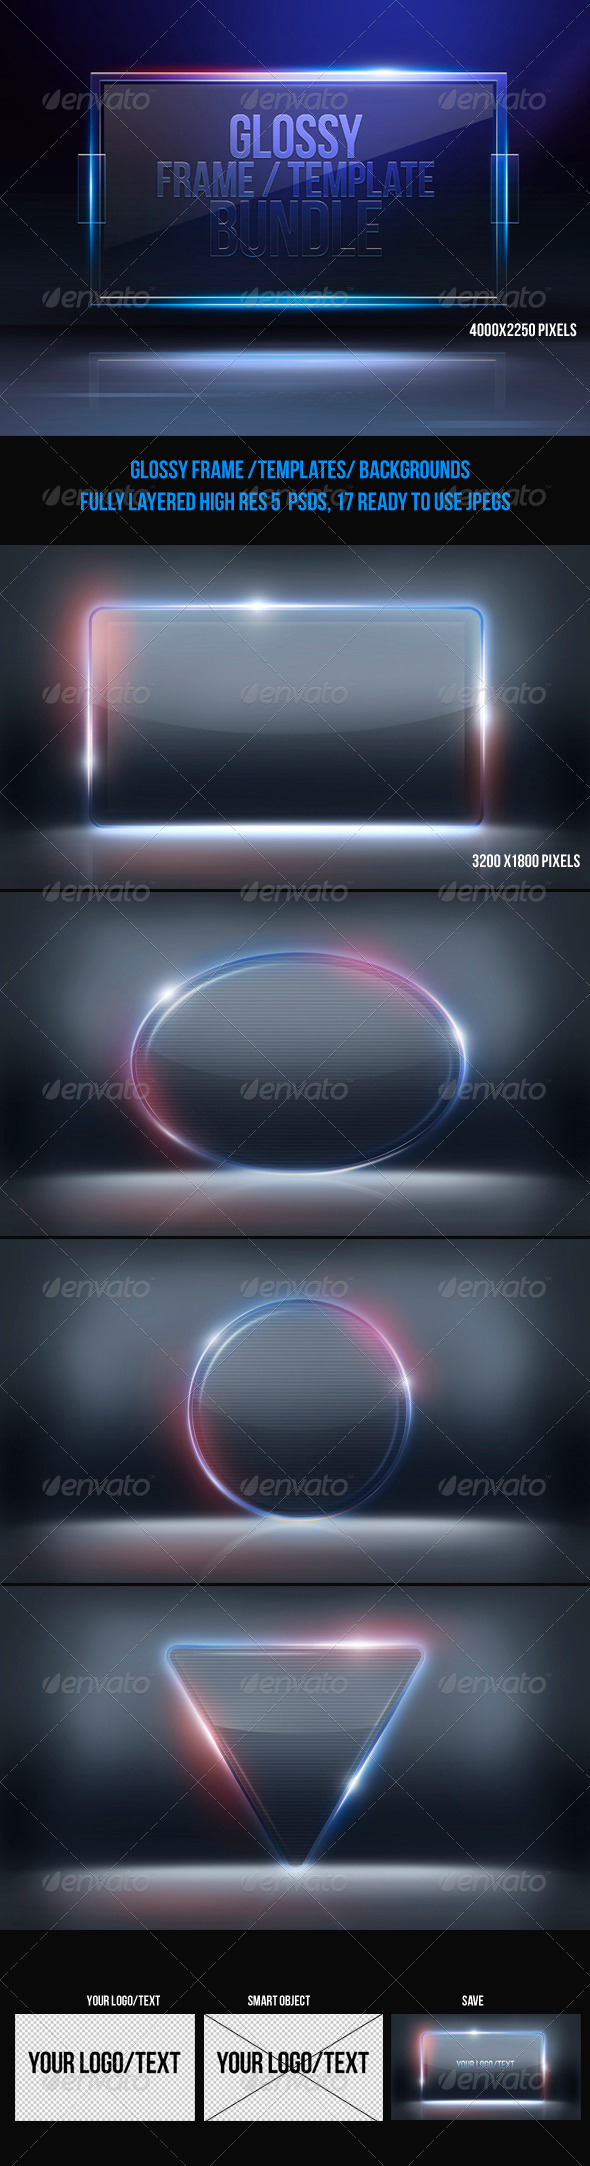 Glossy Frame Template Bundle - Backgrounds Graphics